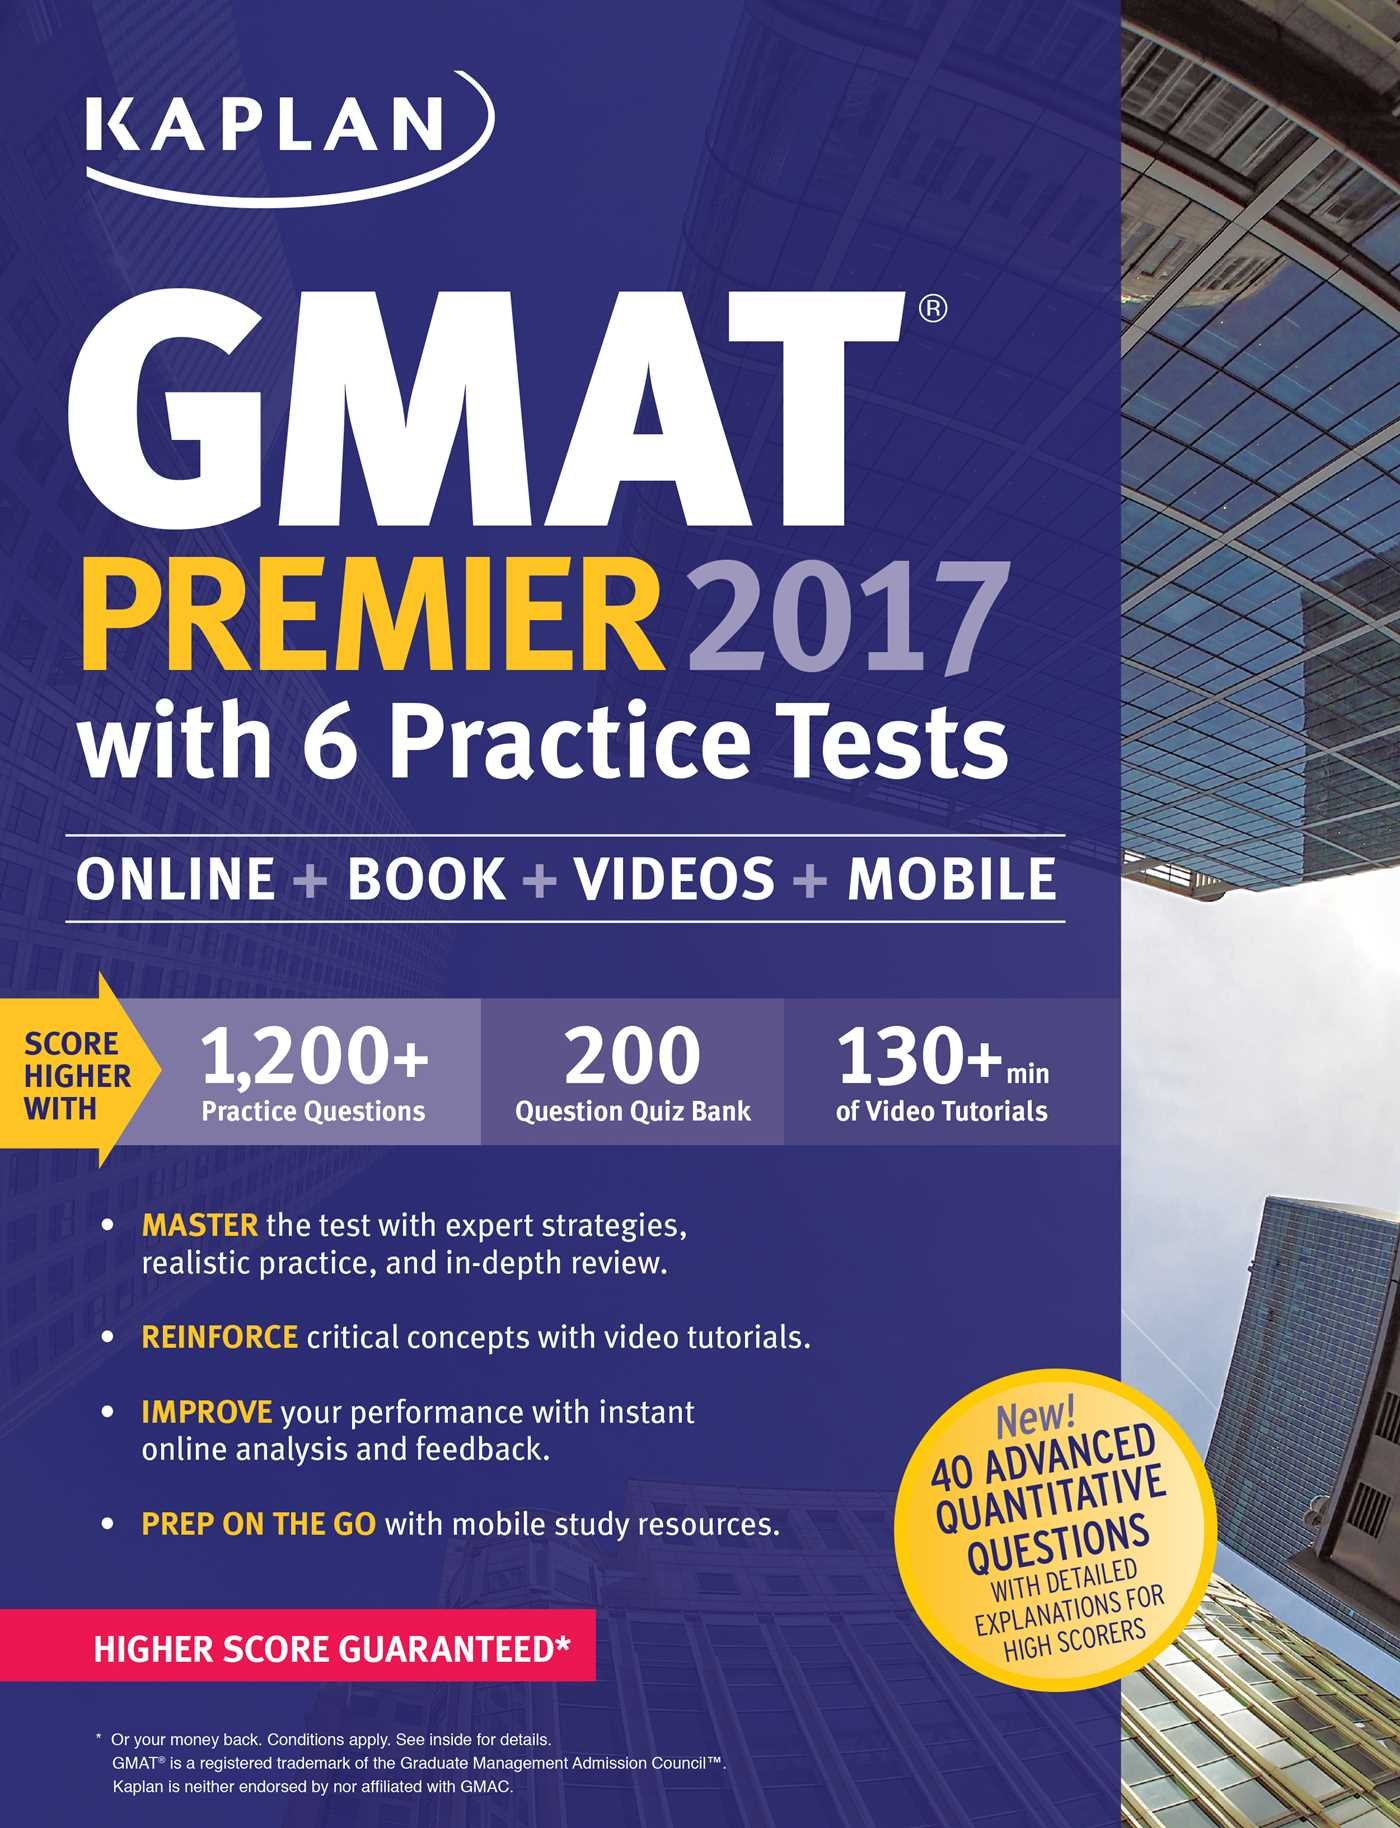 019 Essay Example Gmat Premier With Practice Tests Online Book Videos Mobile Kaplan Test Prep Hires Archaicawful Score Awa Range 5 Full